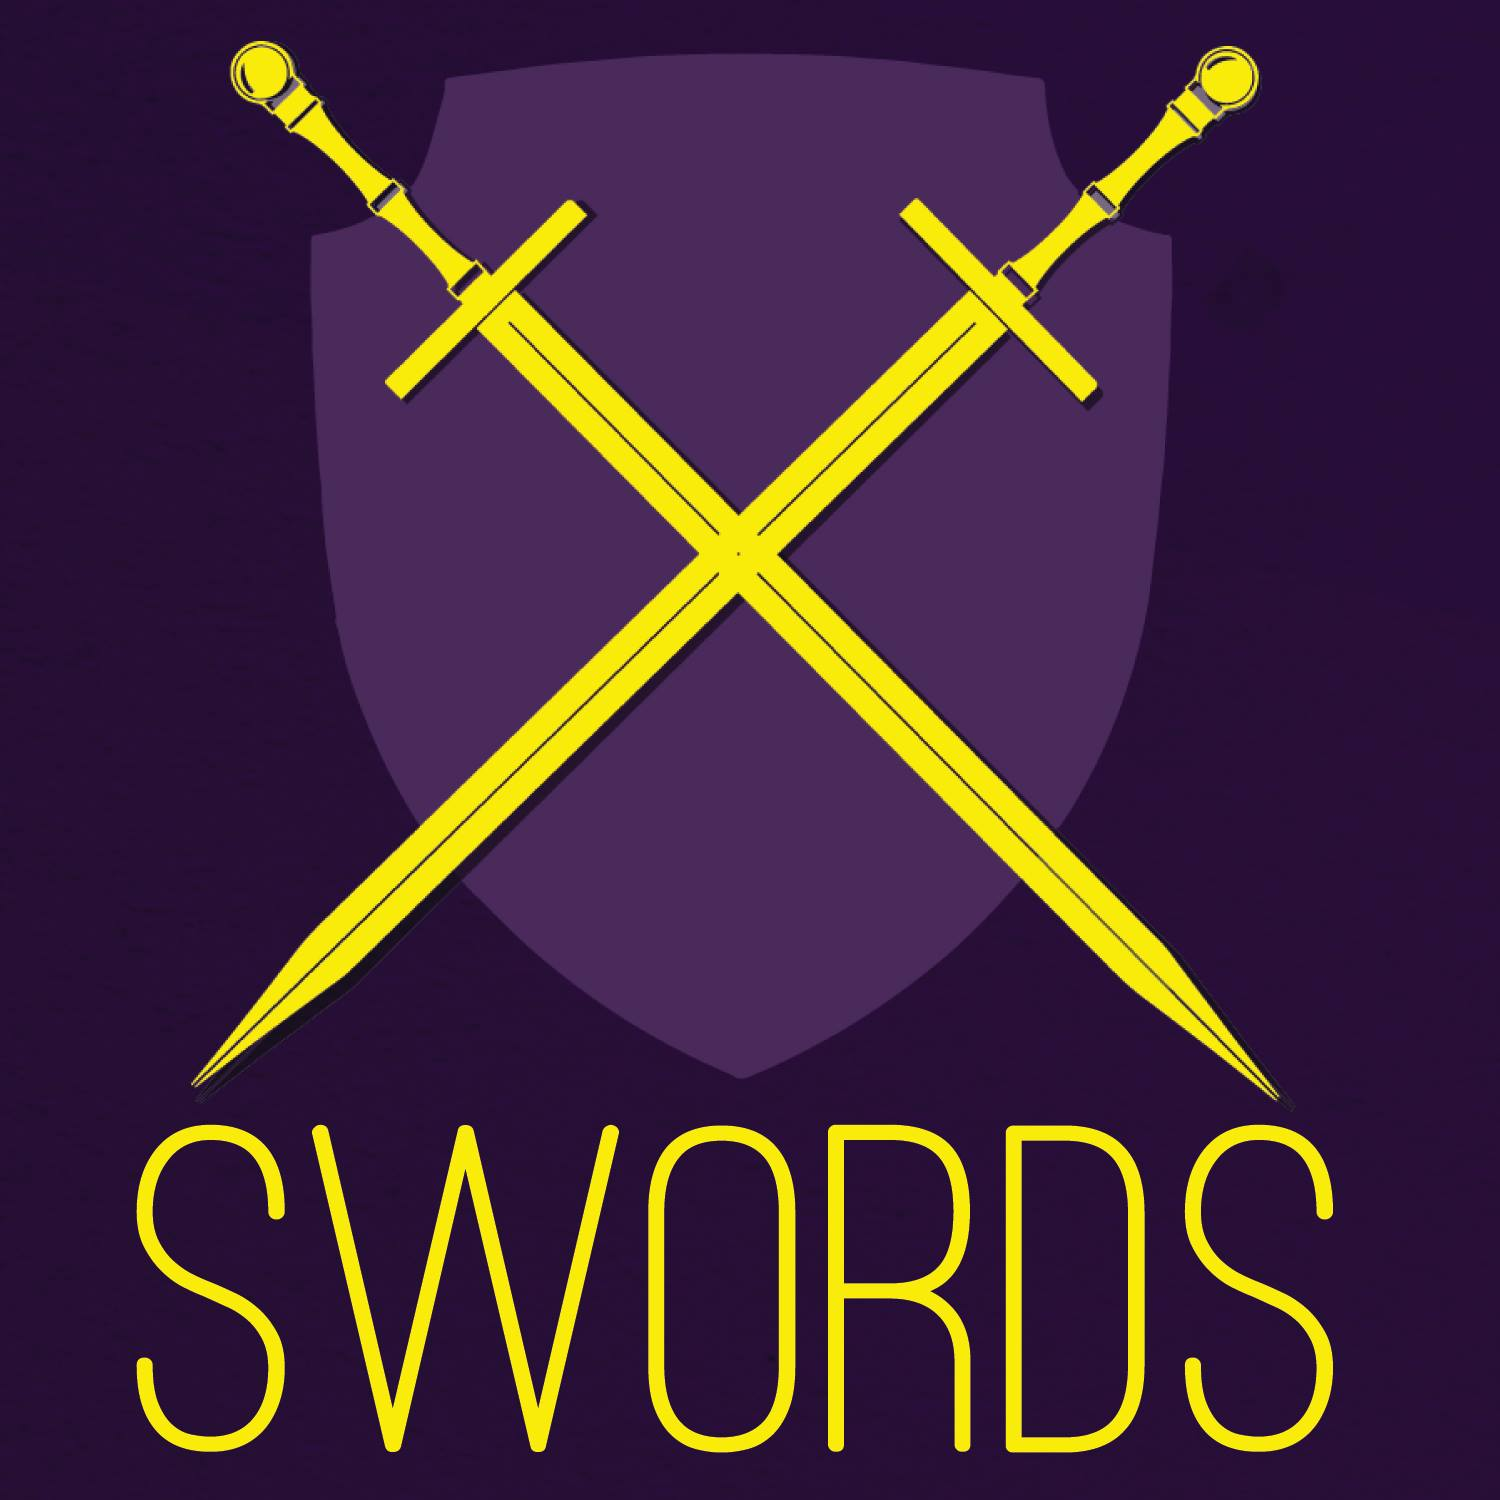 UniClubs - UOW Debating Society (SWORDS) Logo